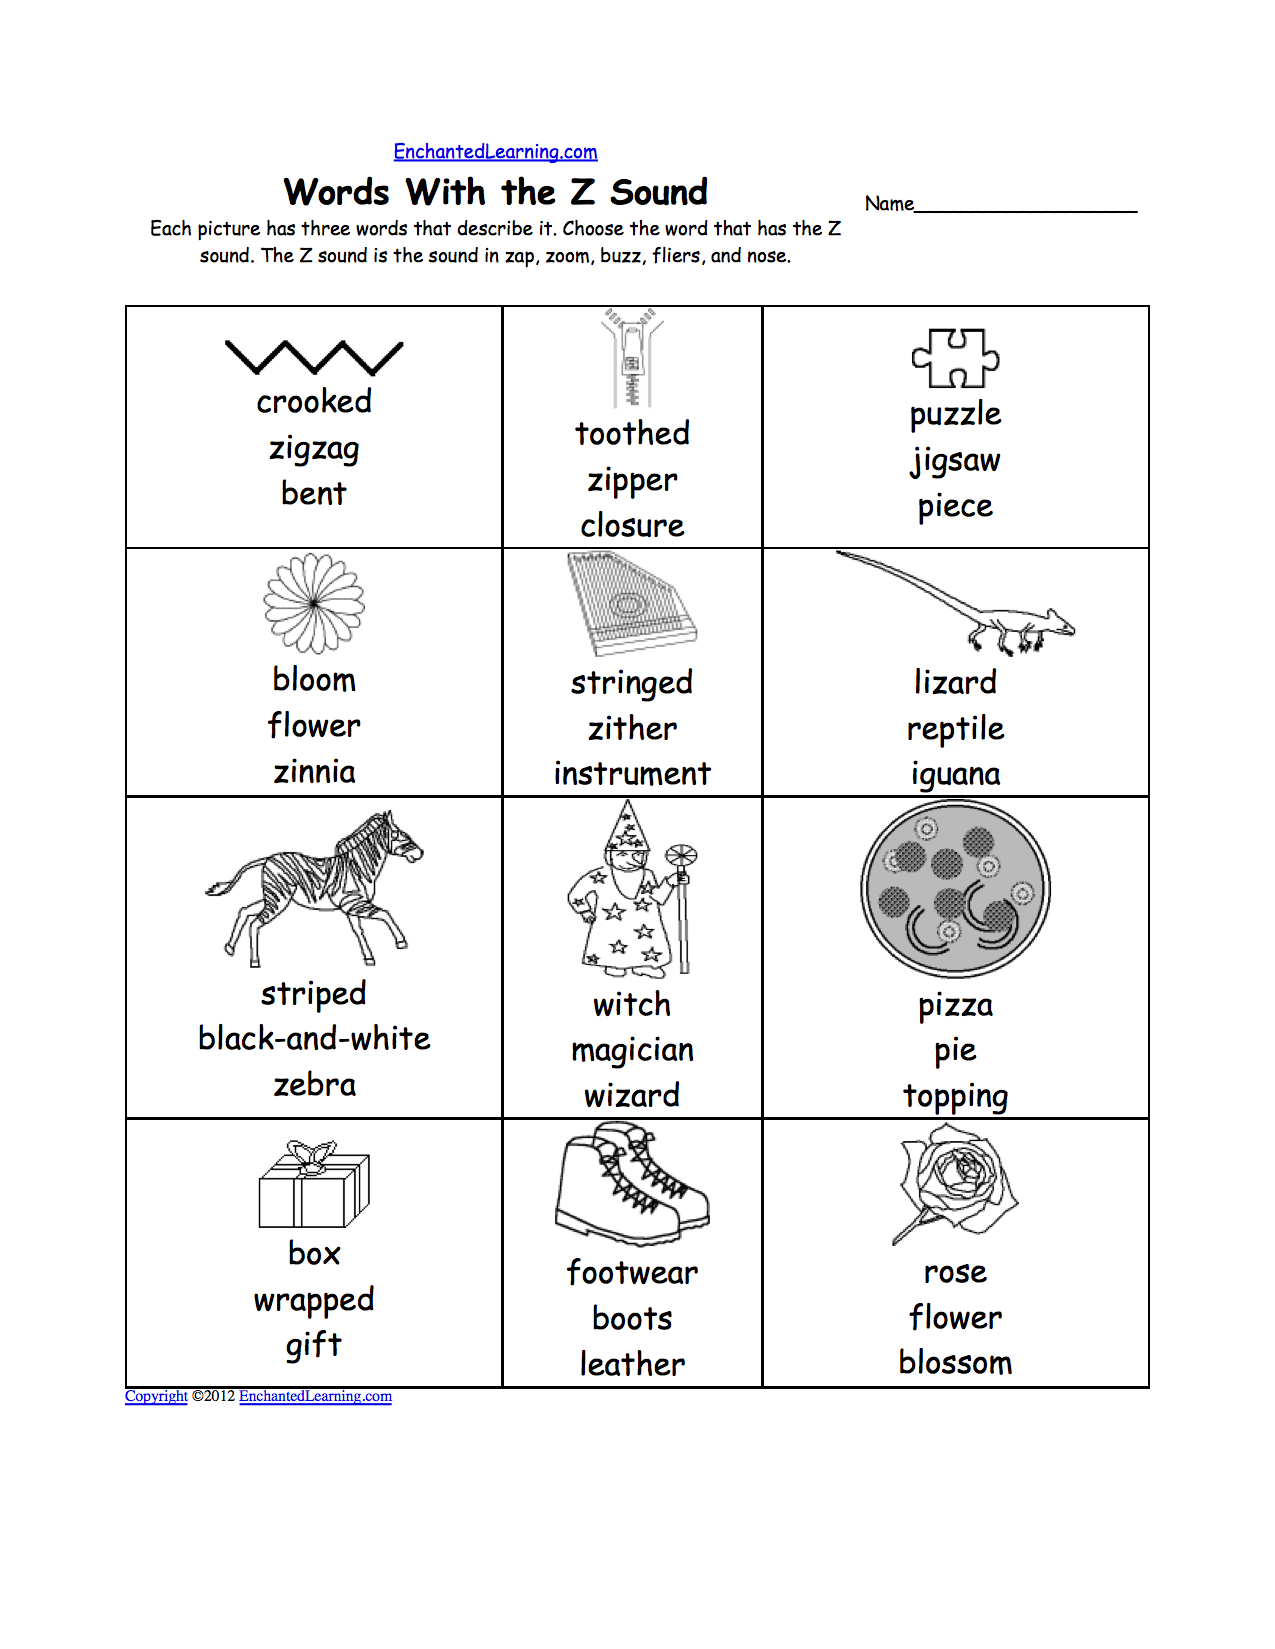 Aldiablosus  Mesmerizing Phonics Worksheets Multiple Choice Worksheets To Print  With Lovely Phonics Worksheets Multiple Choice Worksheets To Print  Enchantedlearningcom With Beautiful Math Worksheets Kindergarten Addition Also Metric System Worksheets High School In Addition Excel Reference Worksheet And Classroom Scavenger Hunt Worksheet As Well As Solution Focused Worksheets Additionally Martin Luther King Jr Printable Worksheets From Enchantedlearningcom With Aldiablosus  Lovely Phonics Worksheets Multiple Choice Worksheets To Print  With Beautiful Phonics Worksheets Multiple Choice Worksheets To Print  Enchantedlearningcom And Mesmerizing Math Worksheets Kindergarten Addition Also Metric System Worksheets High School In Addition Excel Reference Worksheet From Enchantedlearningcom